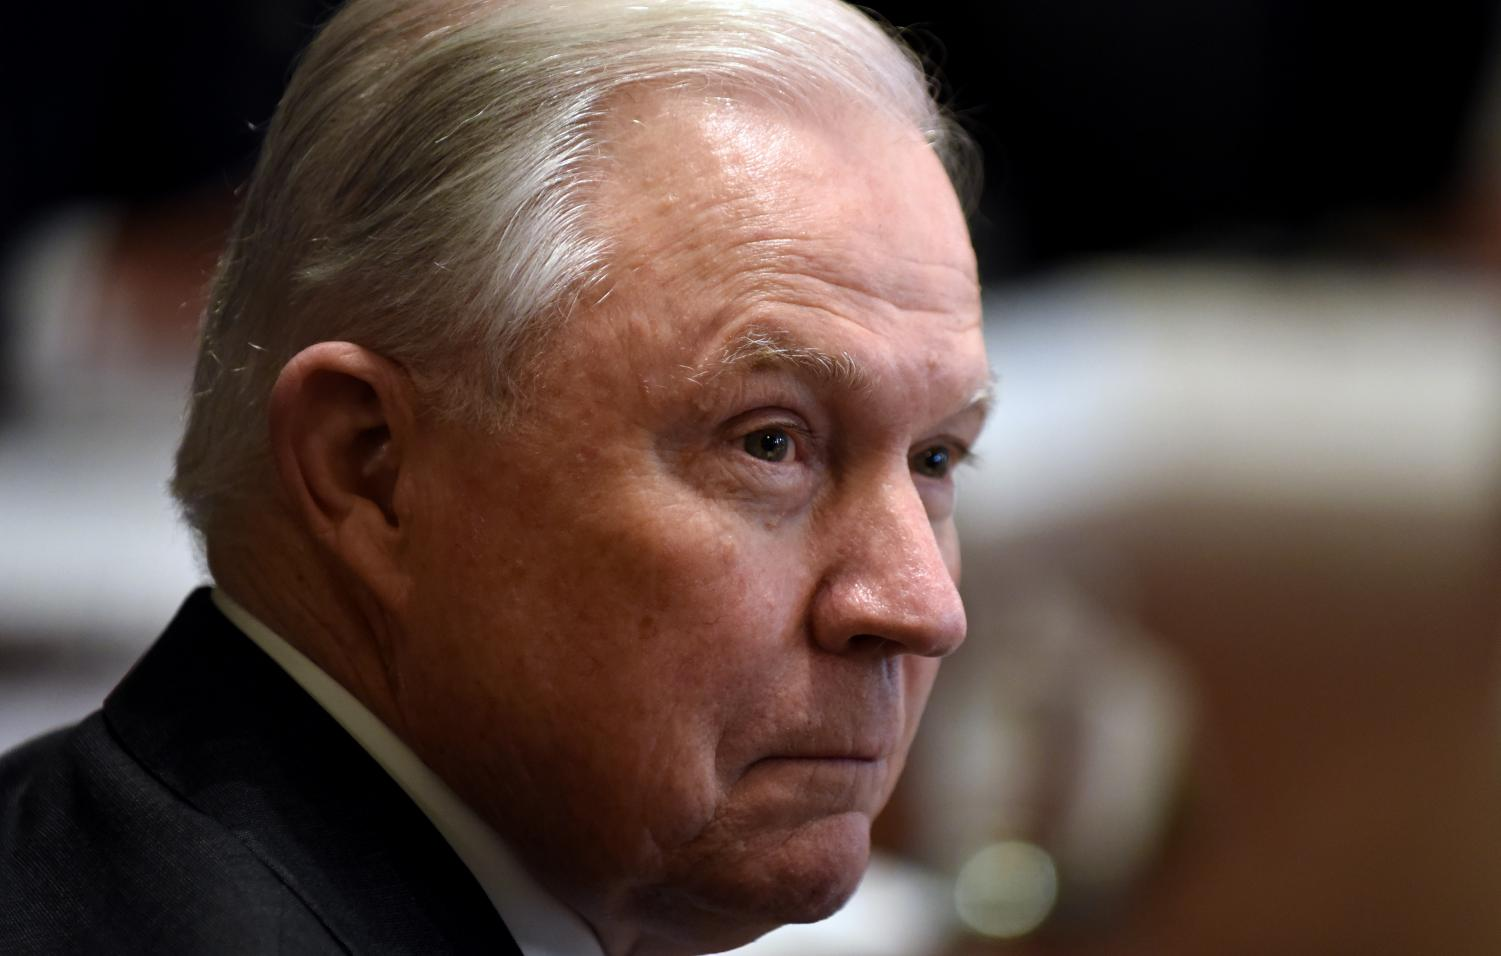 Attorney General Jeff Sessions looks on during a cabinet meeting in the Cabinet Room at the White House Oct. 17, 2018 in Washington, D.C. (Olivier Douliery/Abaca Press/TNS)